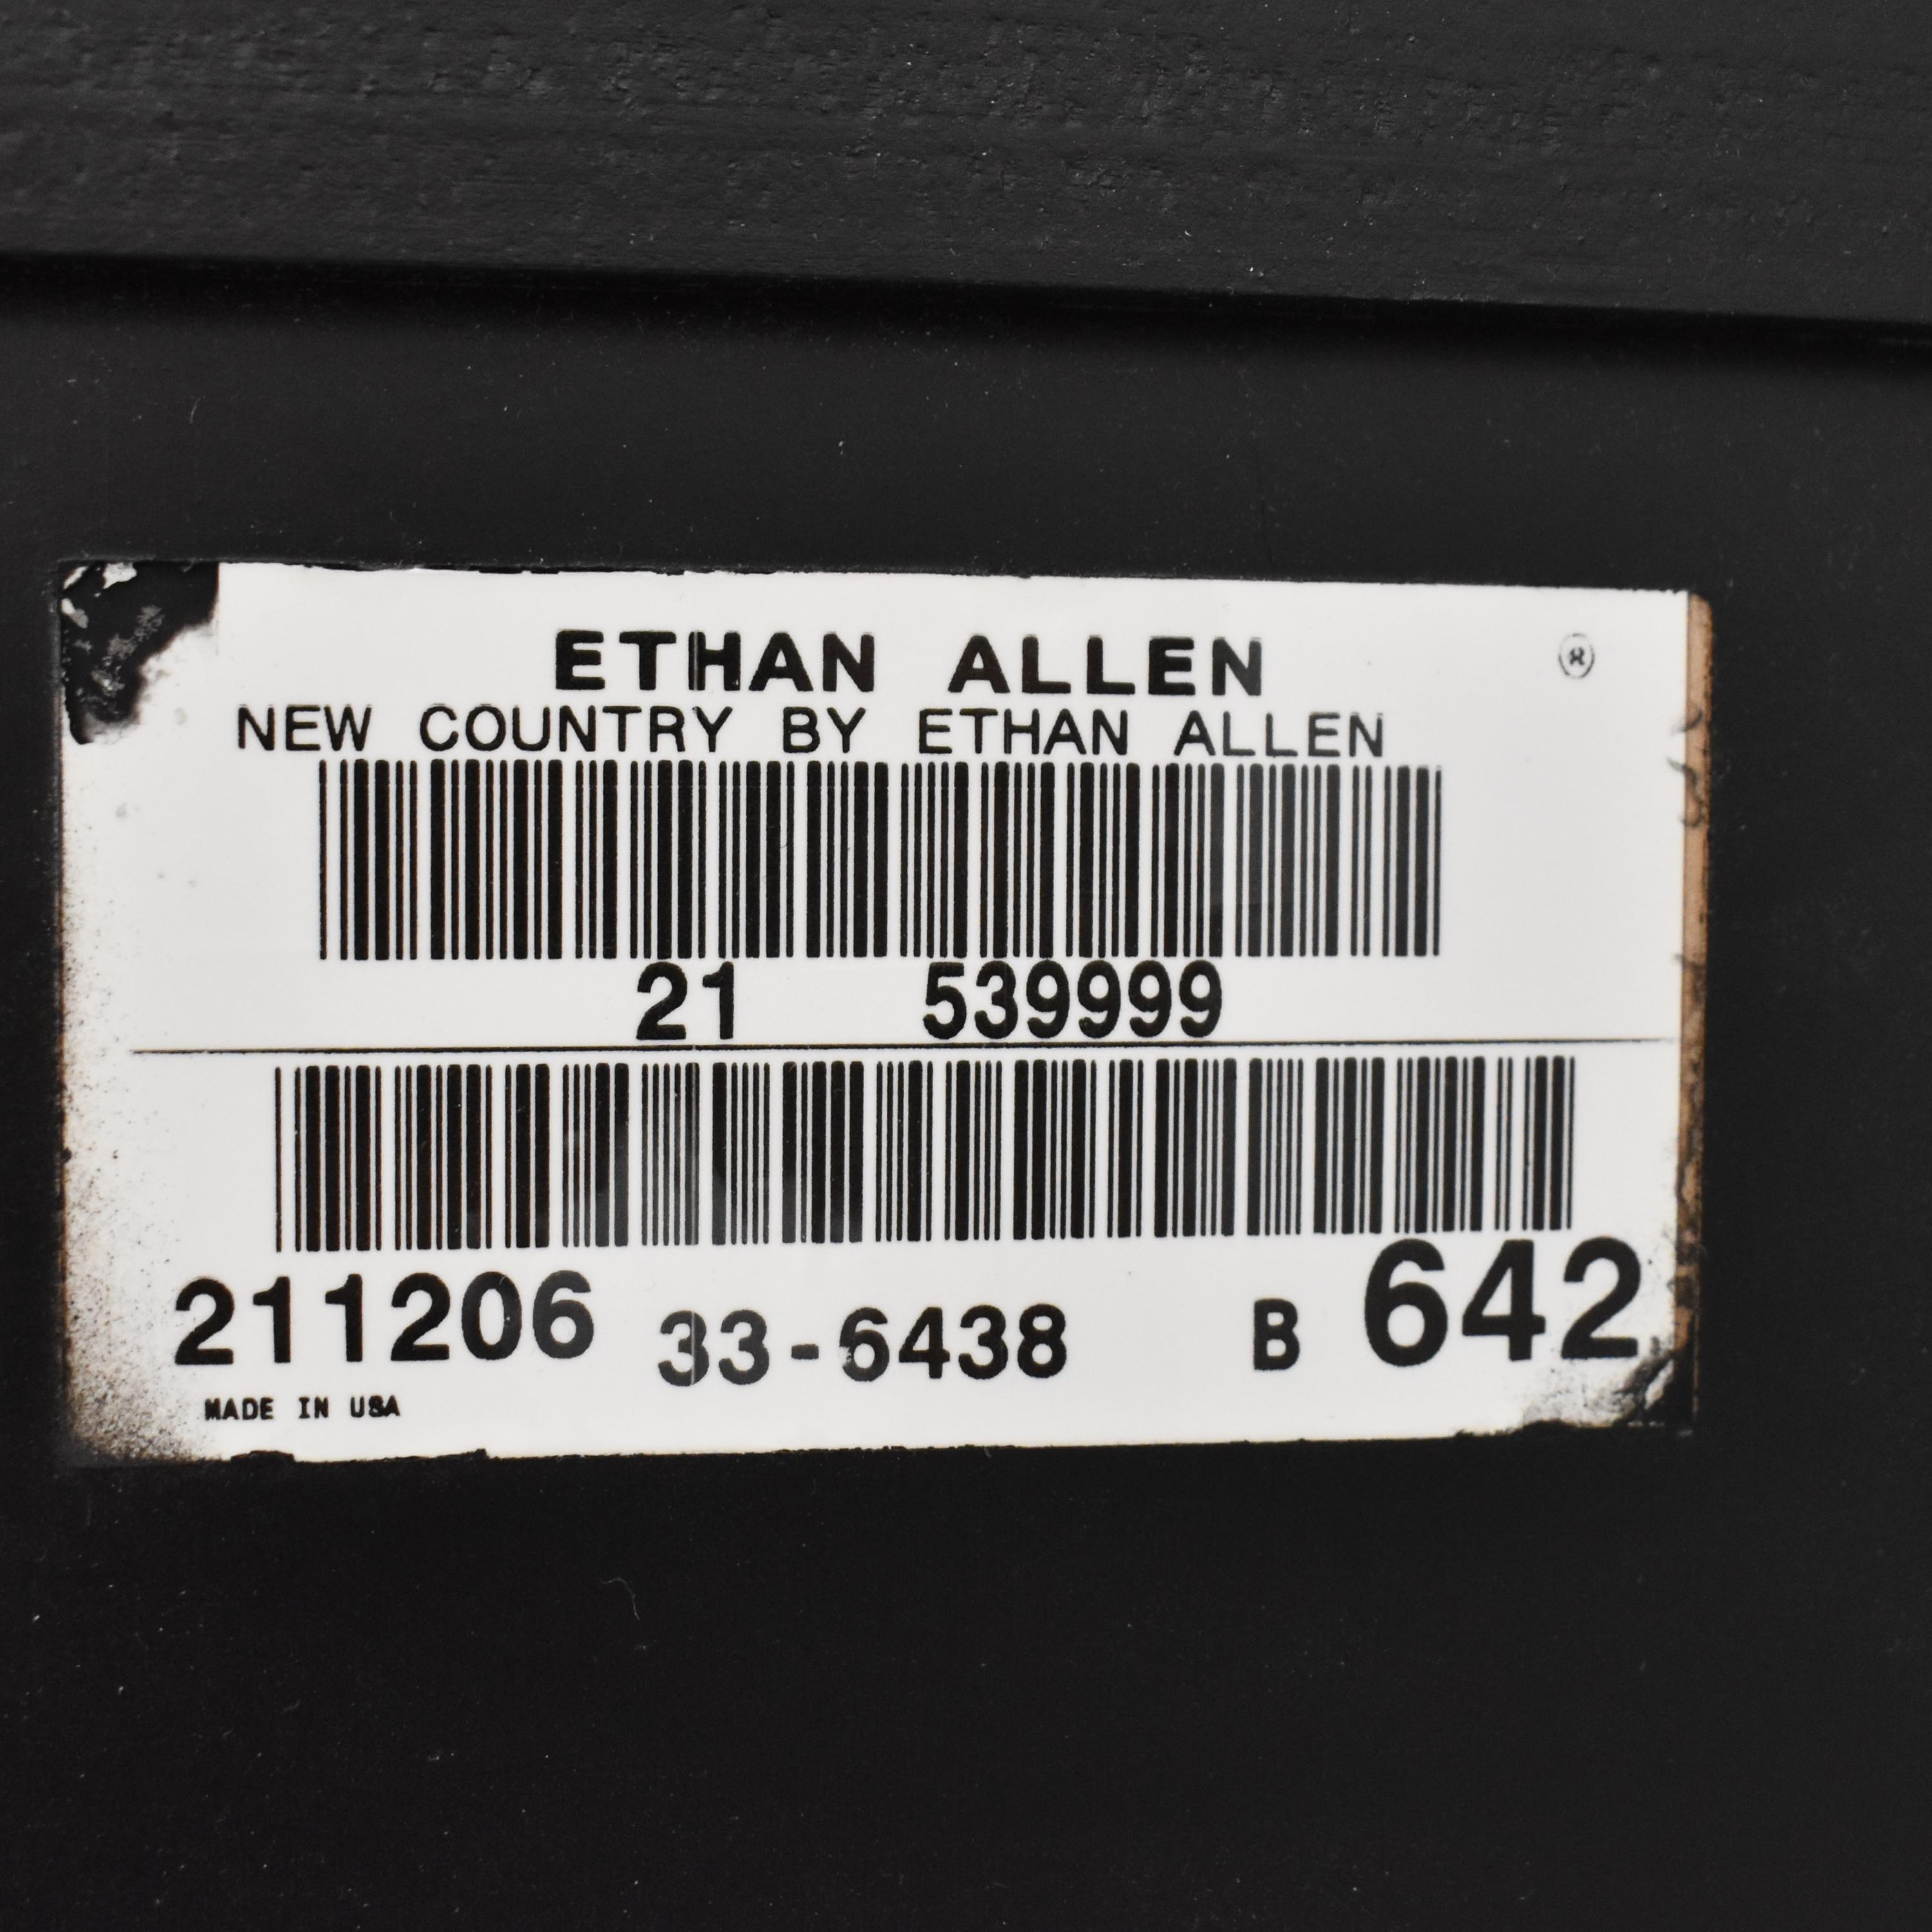 Ethan Allen Ethan Allen New Country Collection Corner Cabinet used